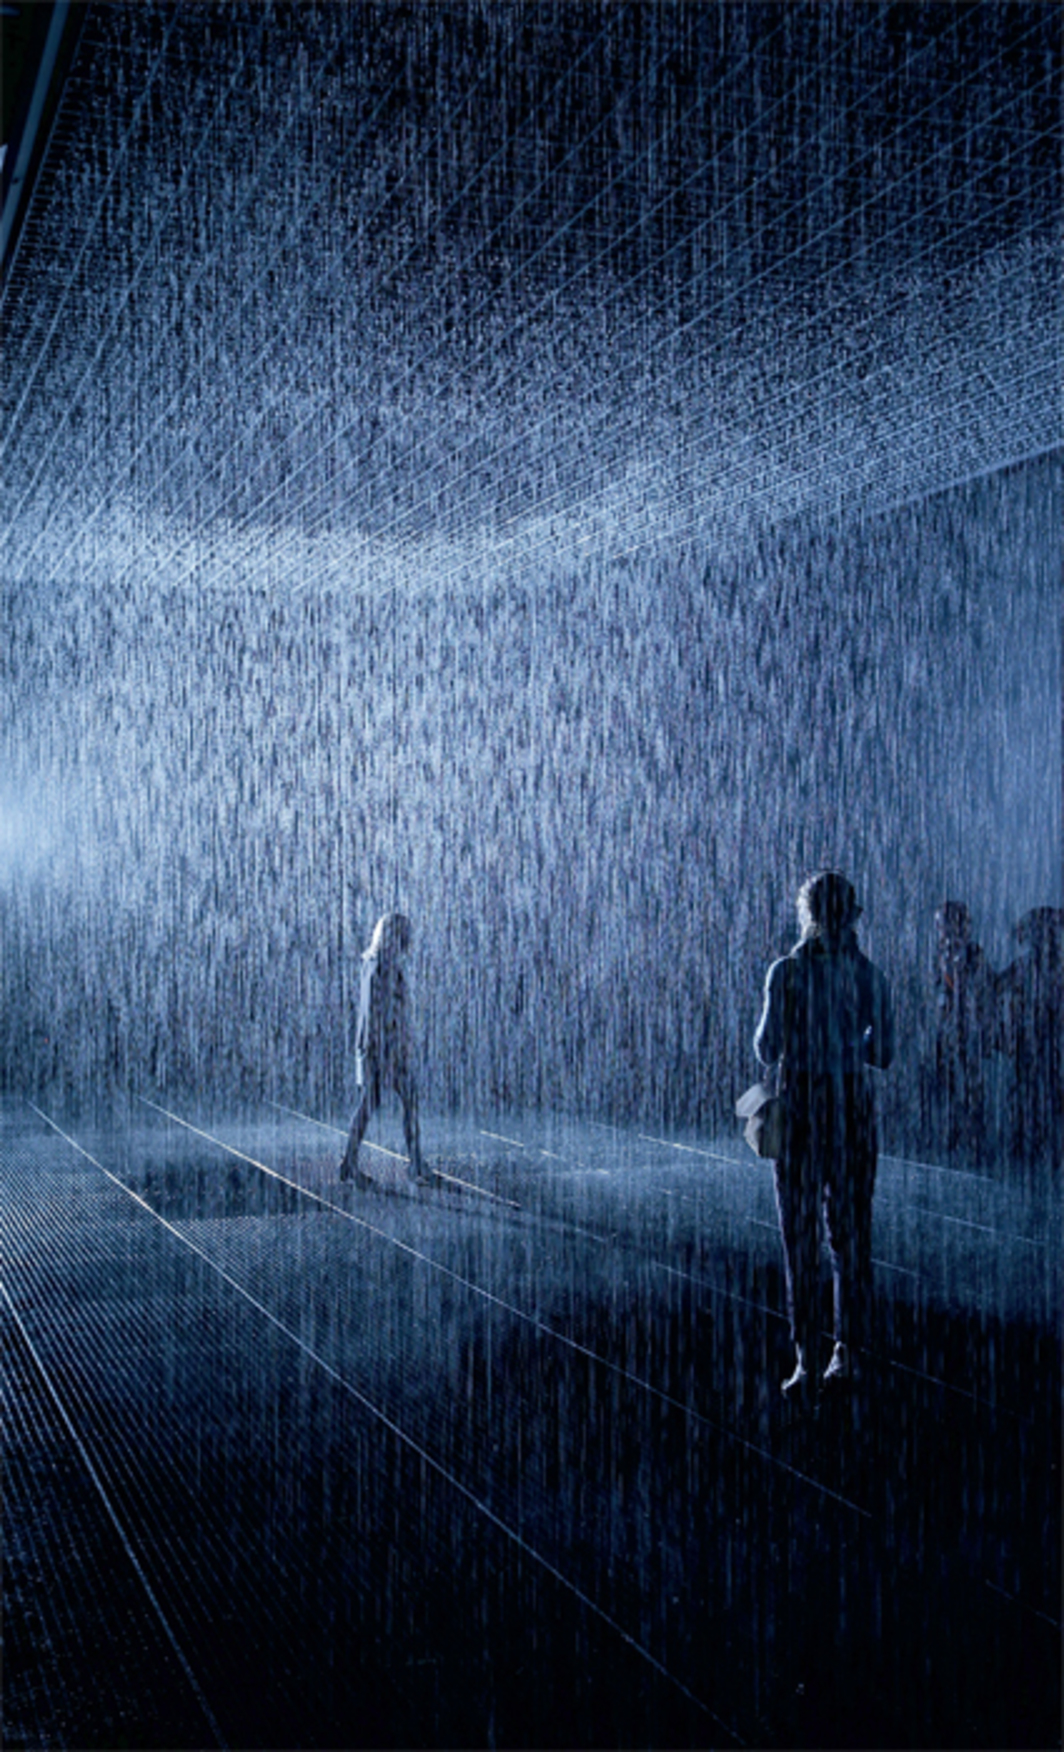 Random International, Rain Room, 2012, water, injection-molded tiles, solenoid valves, pressure regulators, custom soft- ware, 3-D tracking cameras, steel beams, water-management system, grated floor. Installation view, Barbican Centre, London. Photo: Photo: Oli Scarff/Getty Images.